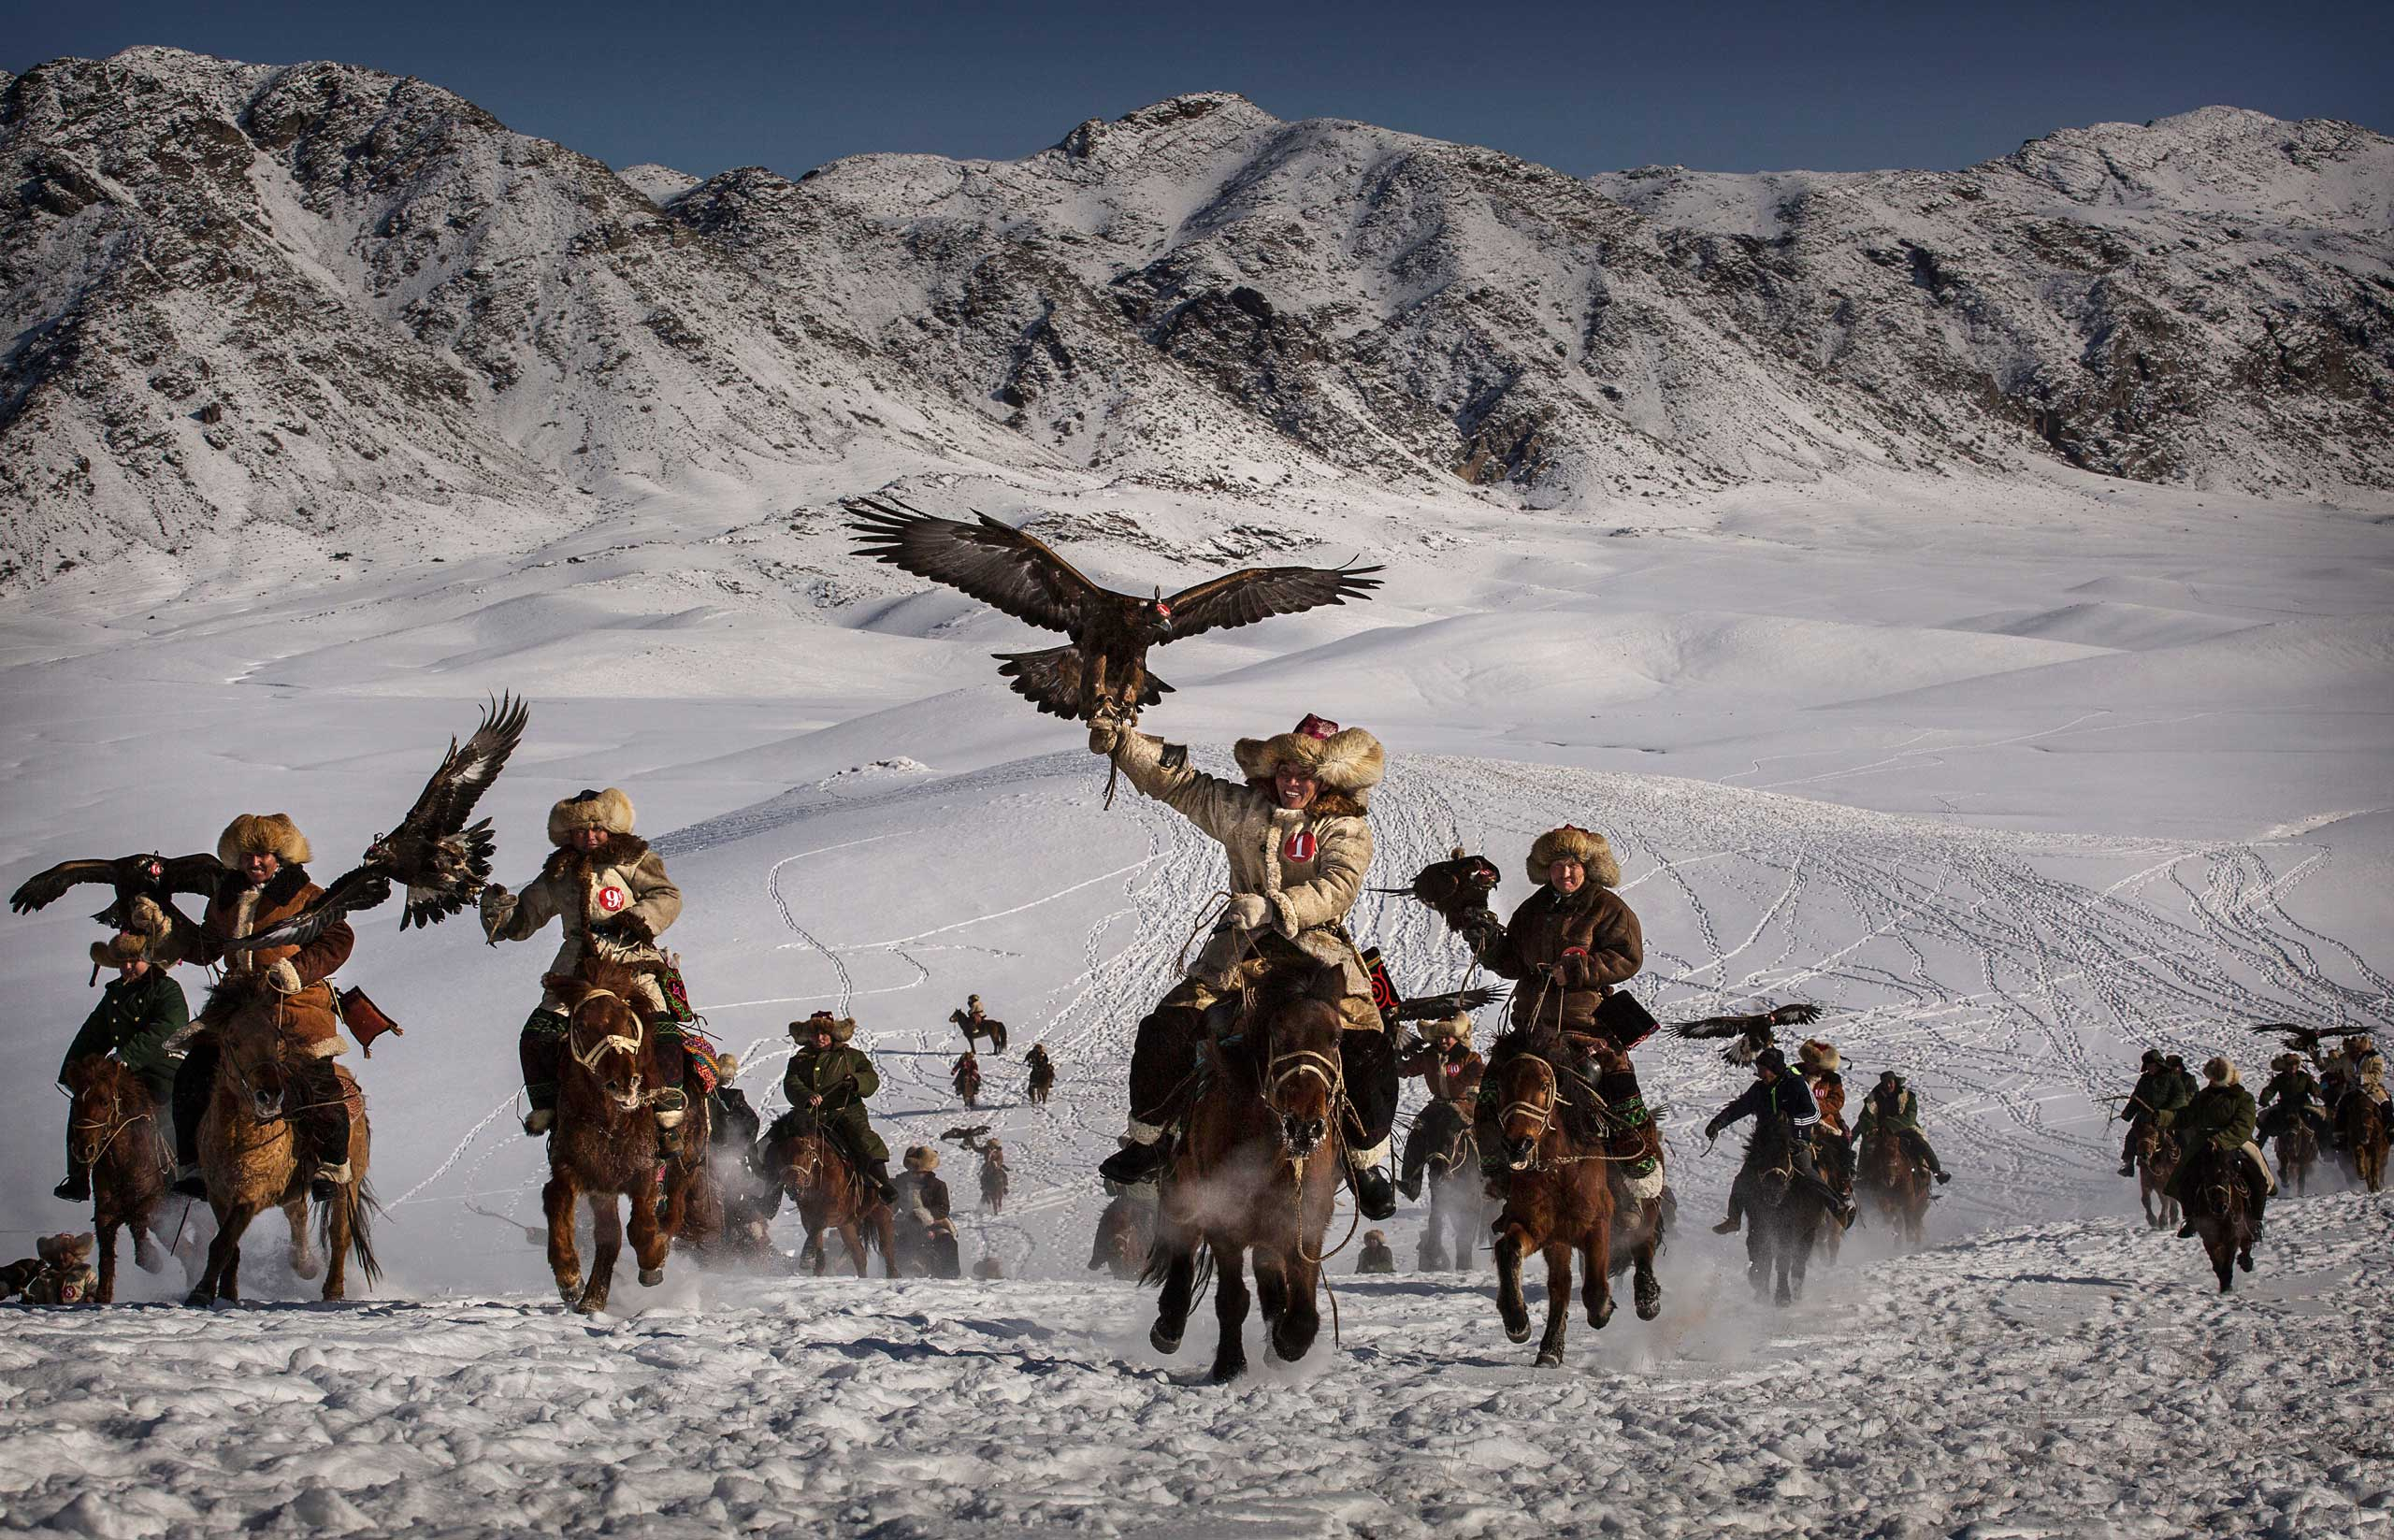 Jan. 30, 2015. Chinese Kazakh eagle hunters ride with their eagles during a local competition  in the mountains of Qinghe County, Xinjiang, northwestern China.